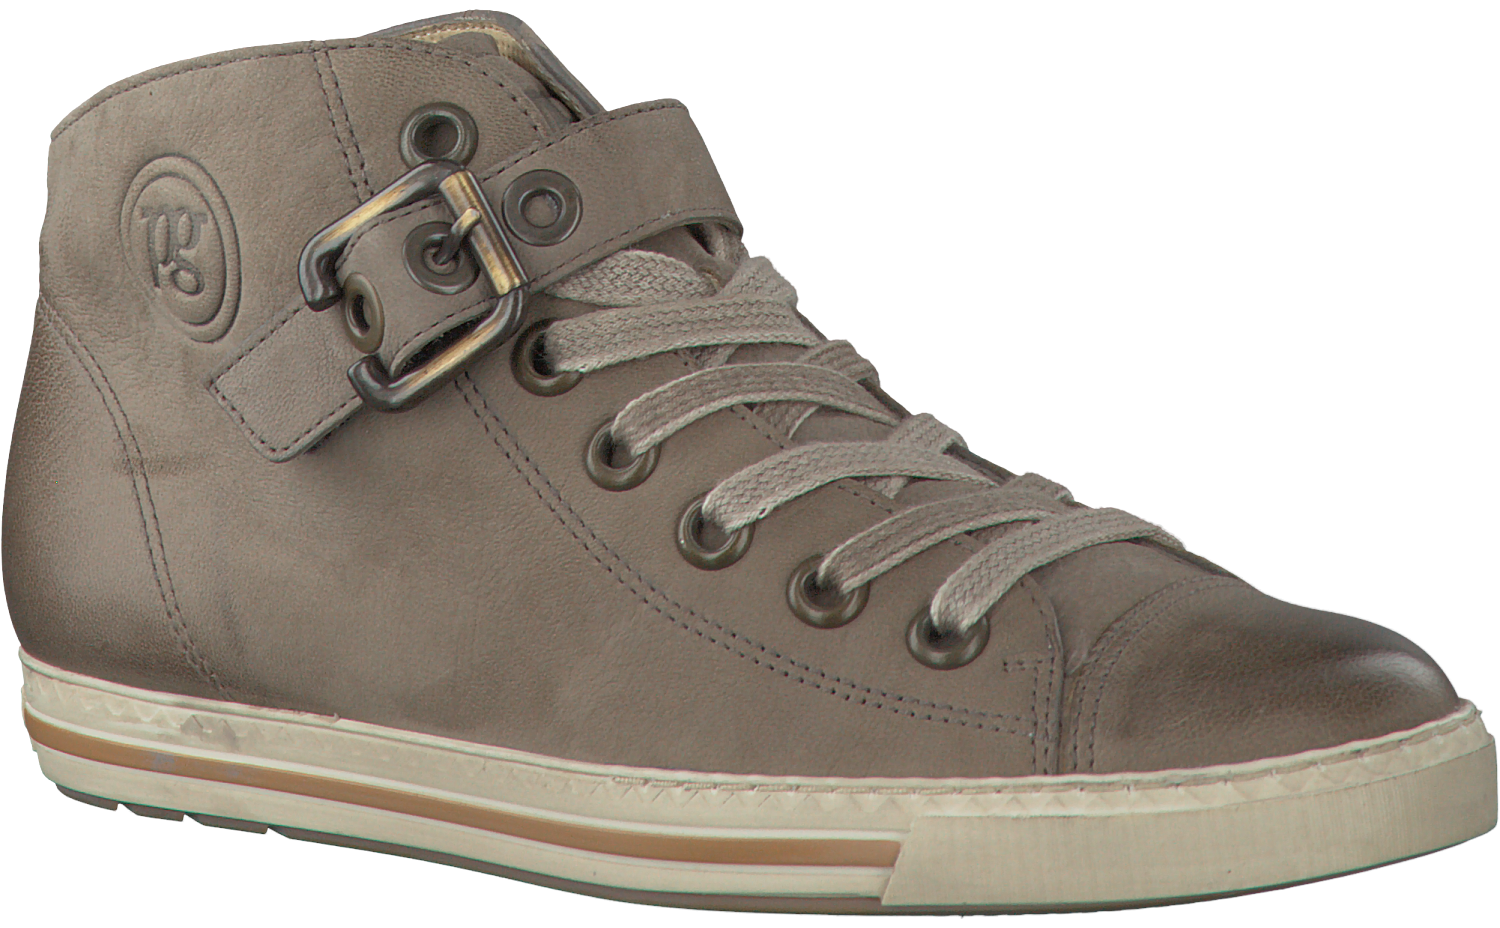 taupe paul green sneakers 1157. Black Bedroom Furniture Sets. Home Design Ideas